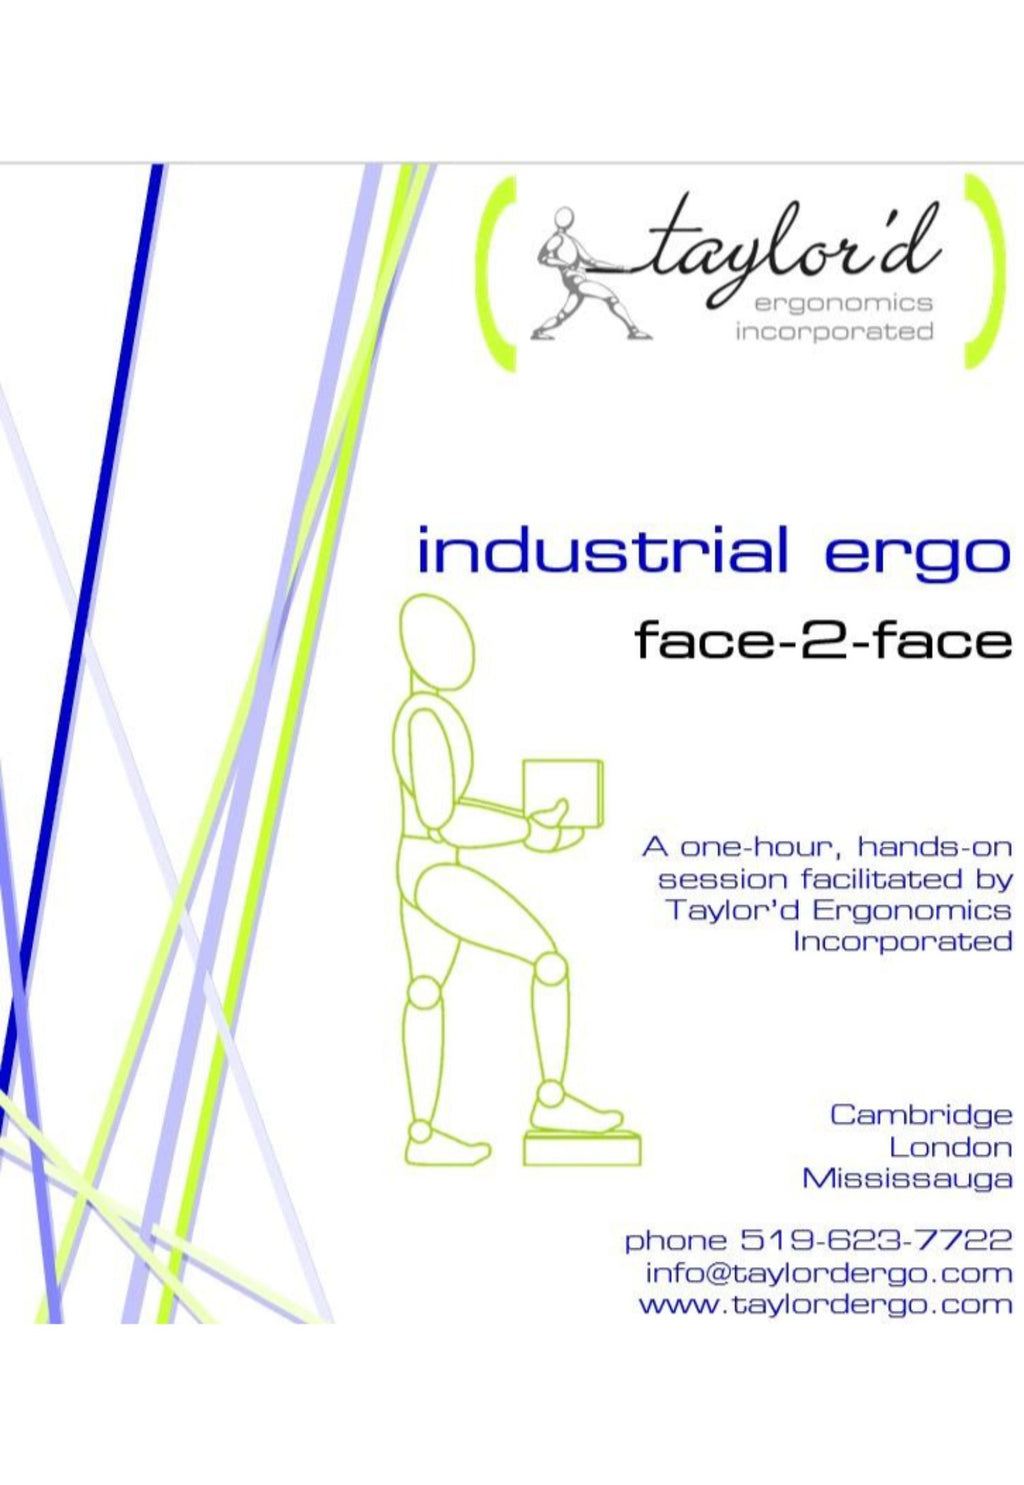 cover page from employee handout for industrial ergonomics workshop for employees